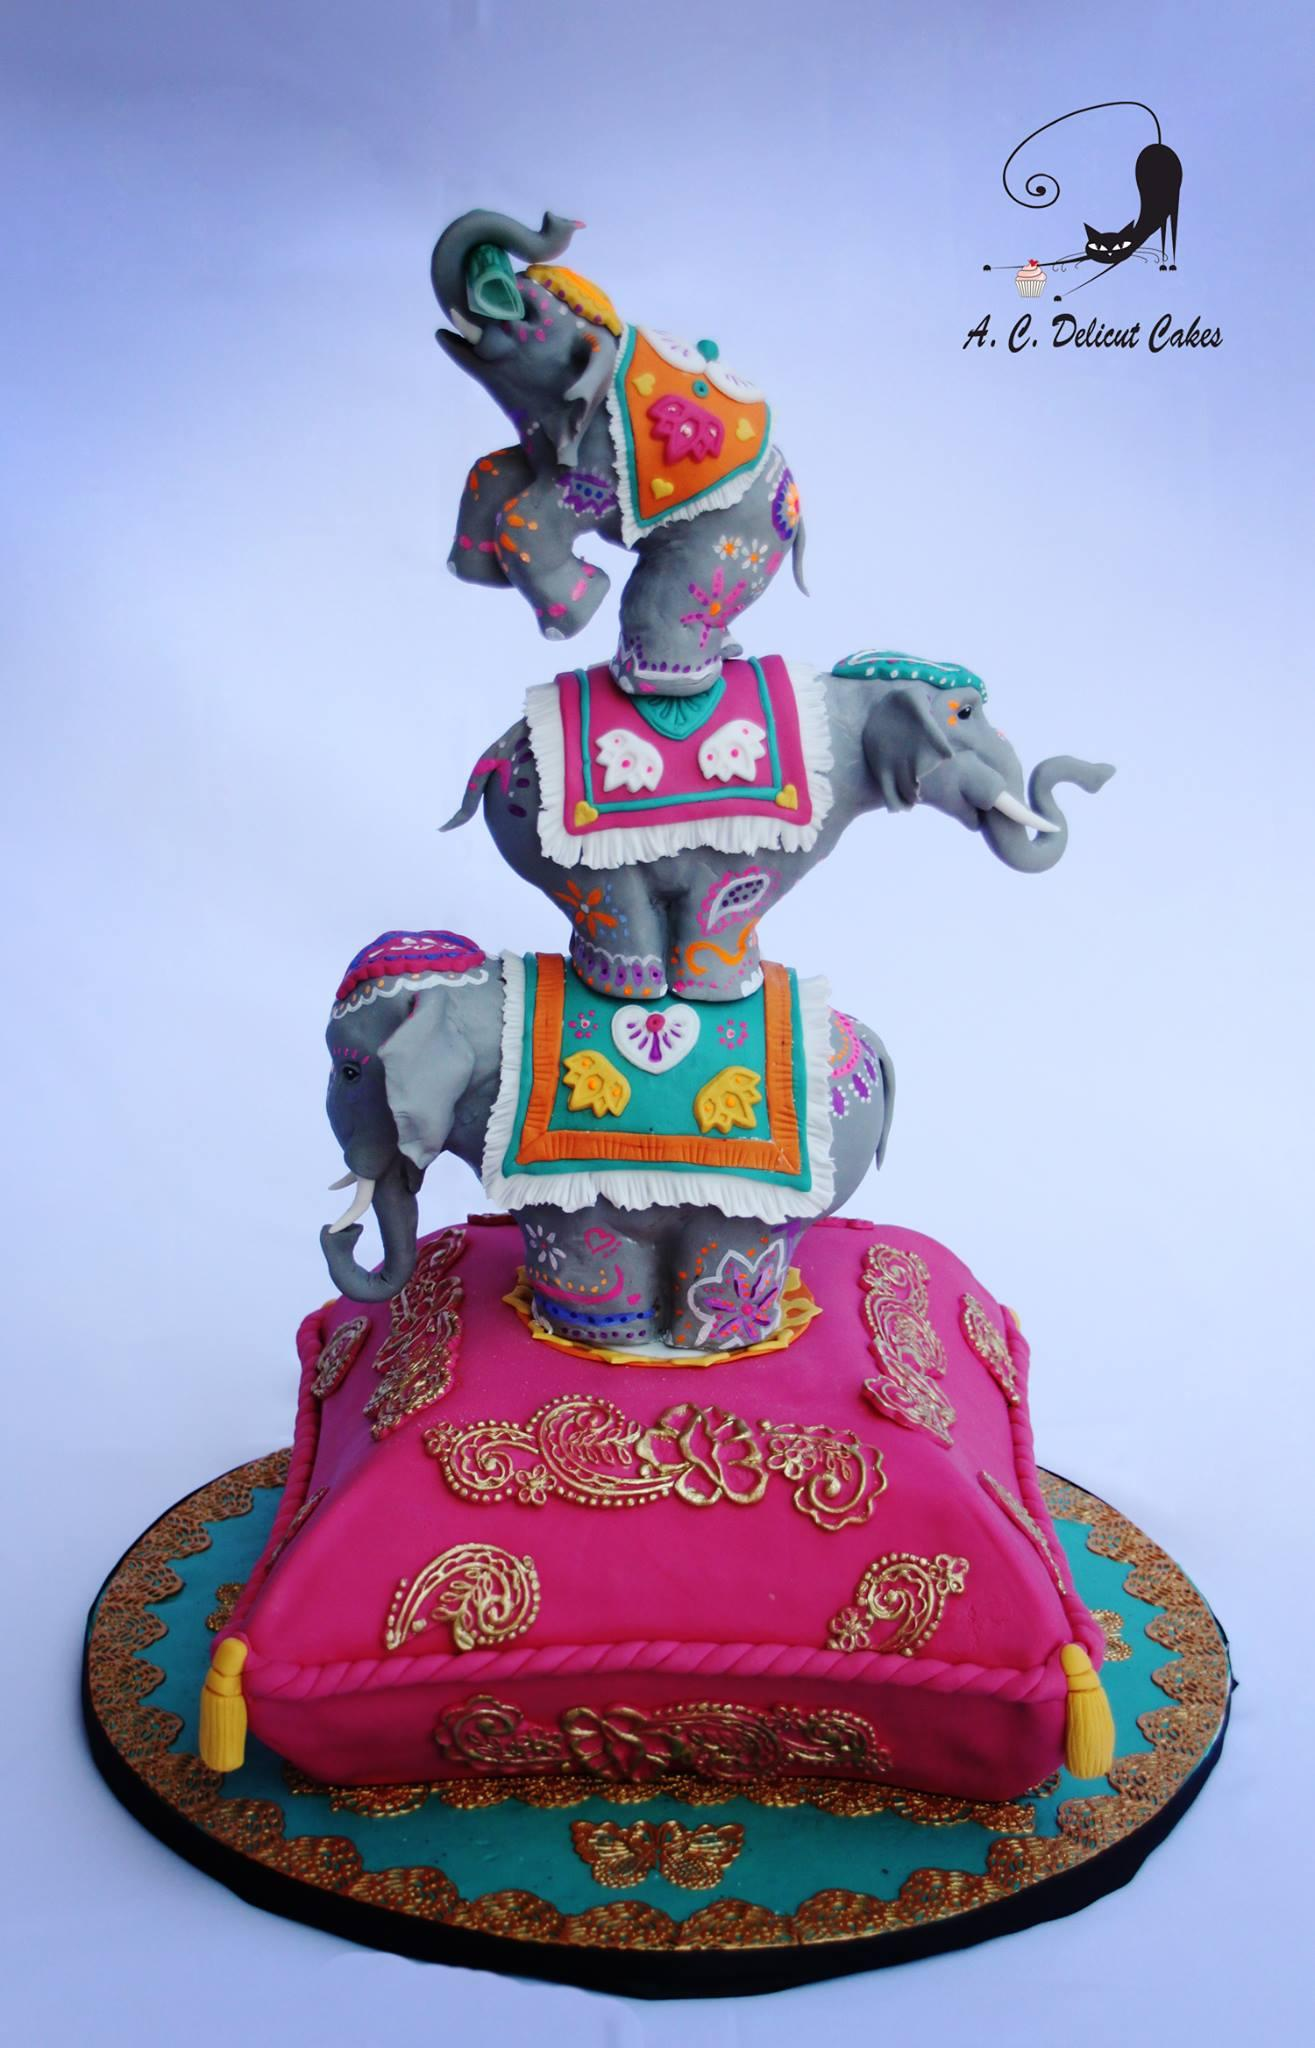 Fondant Elephant cake with bright colors